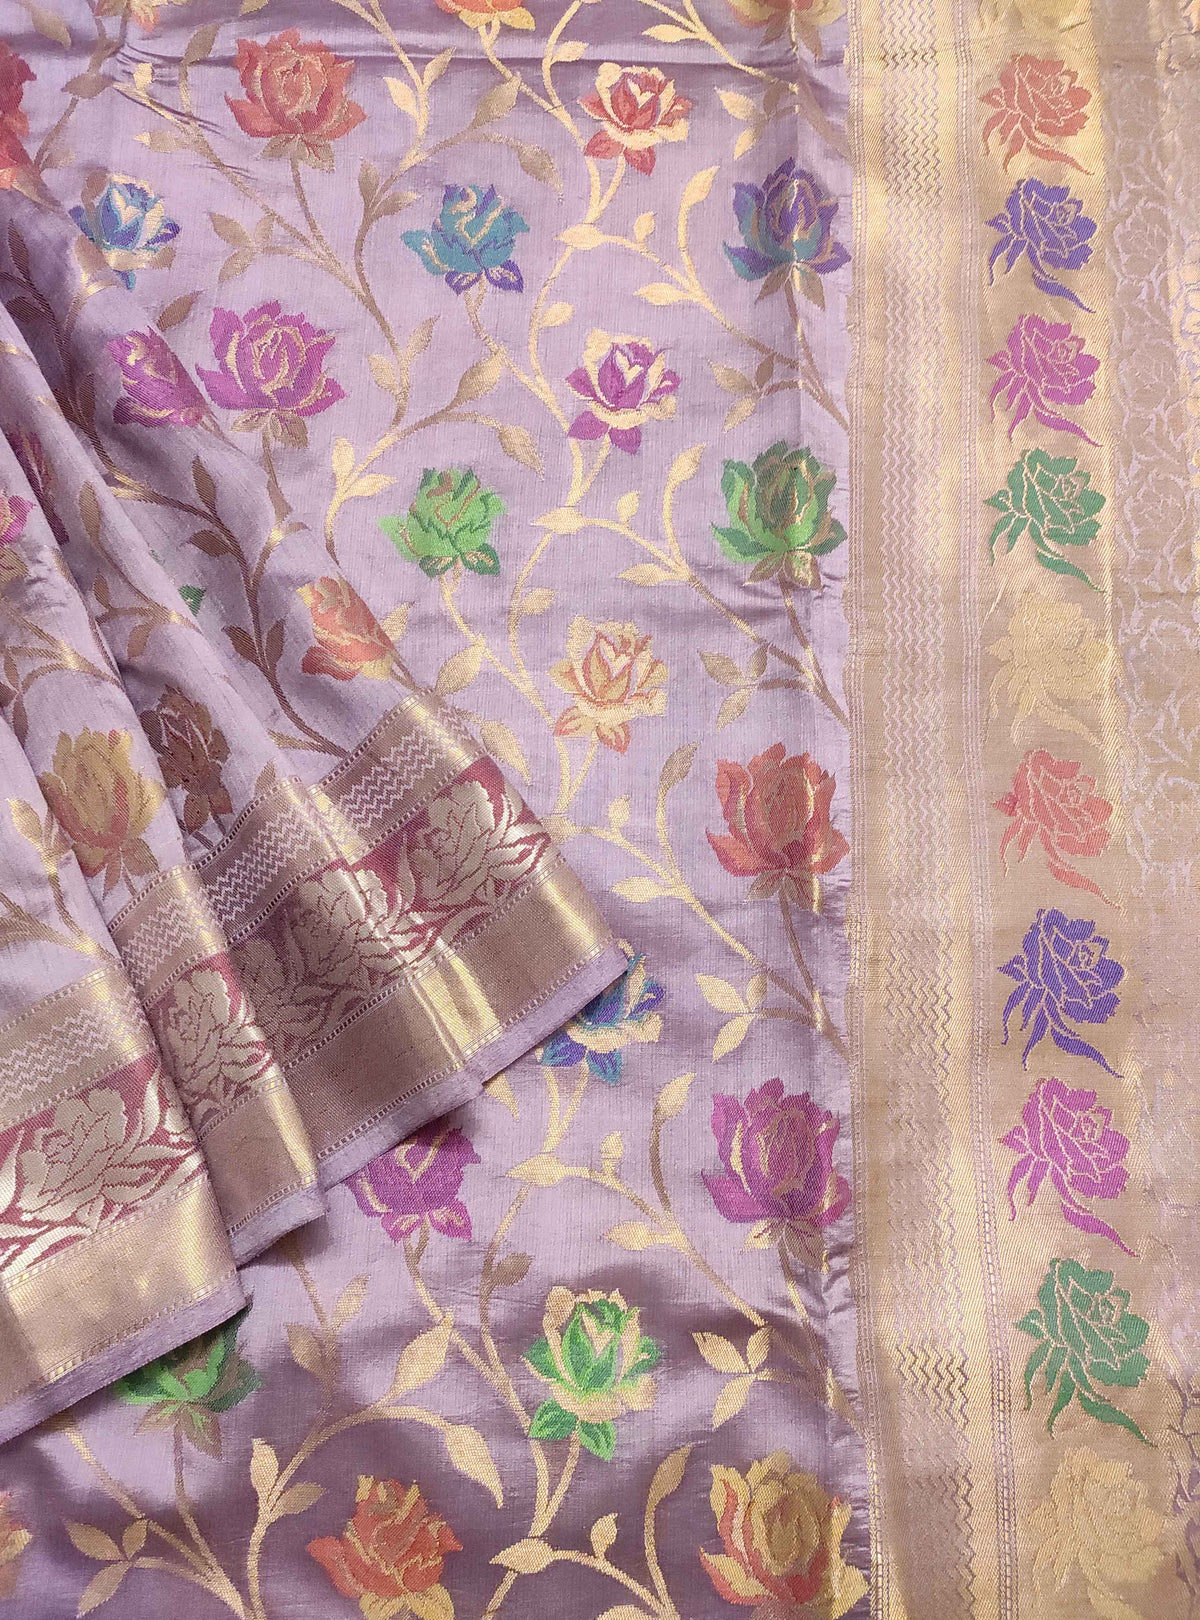 Lavender Muga chiniya silk Banarasi saree with meenedar rose flower jaal (2) Close up